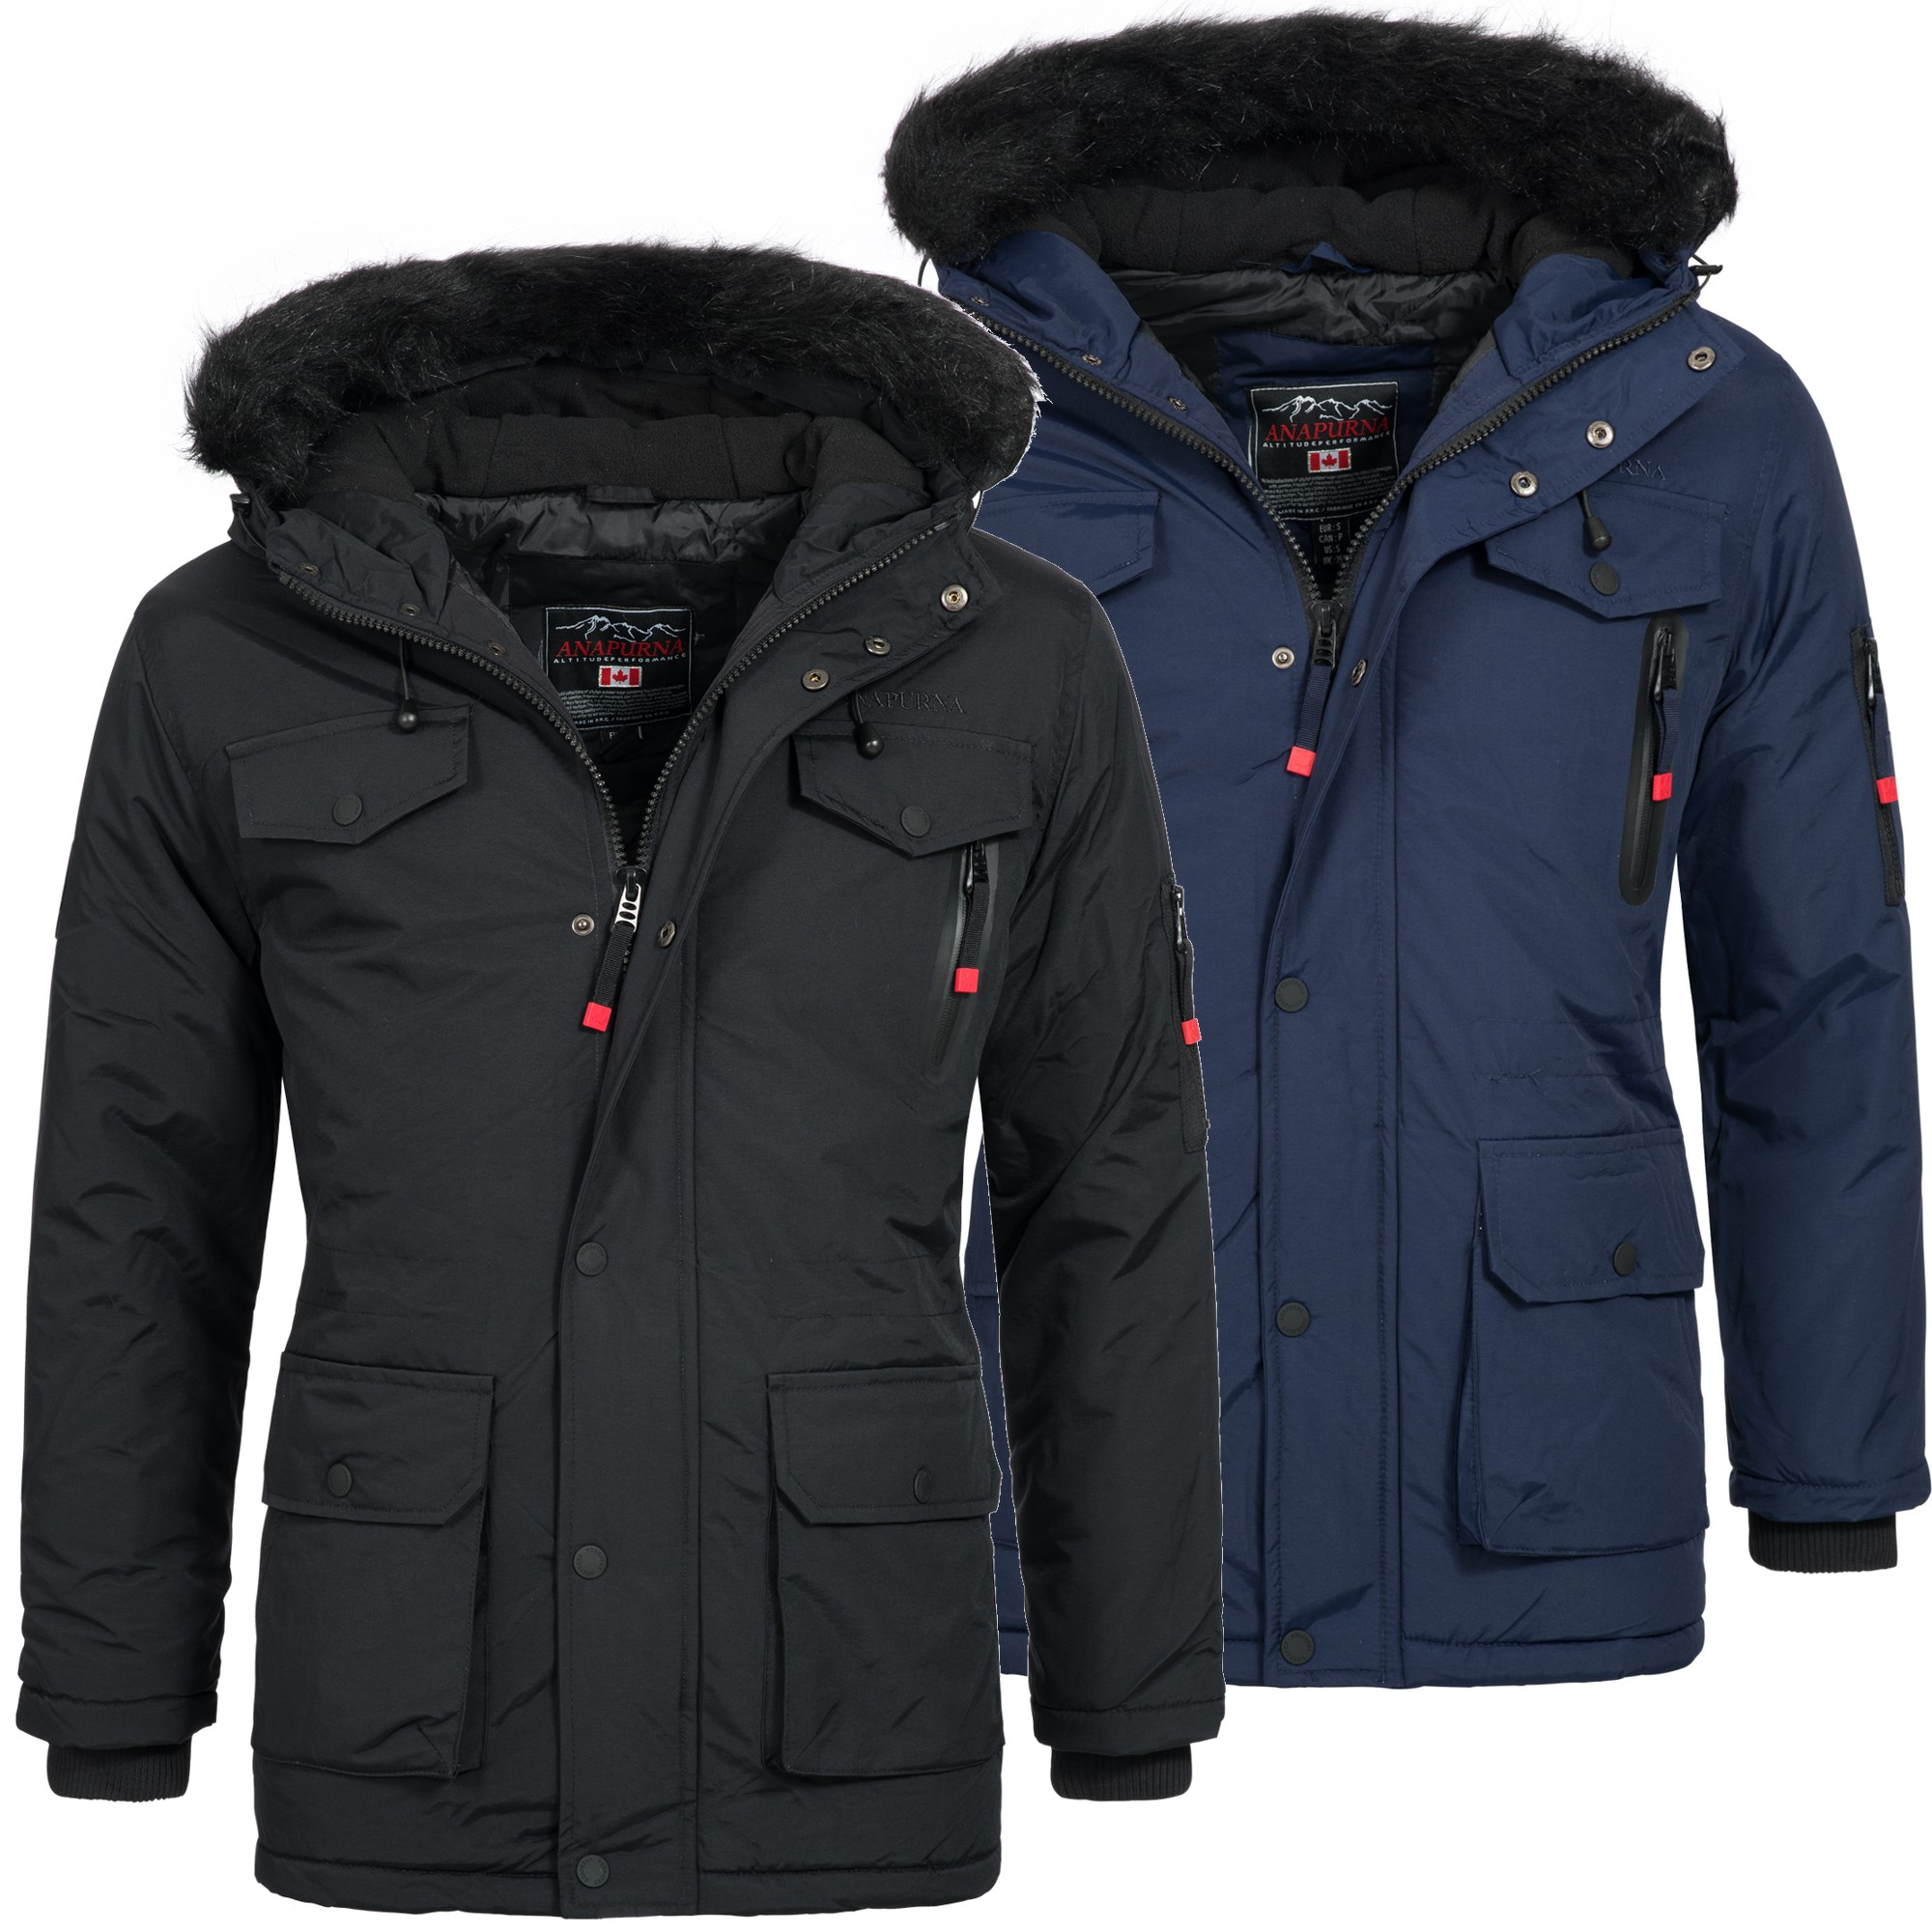 geographical norway alos herren winterjacke jacke parka mantel warm gef ttert ebay. Black Bedroom Furniture Sets. Home Design Ideas